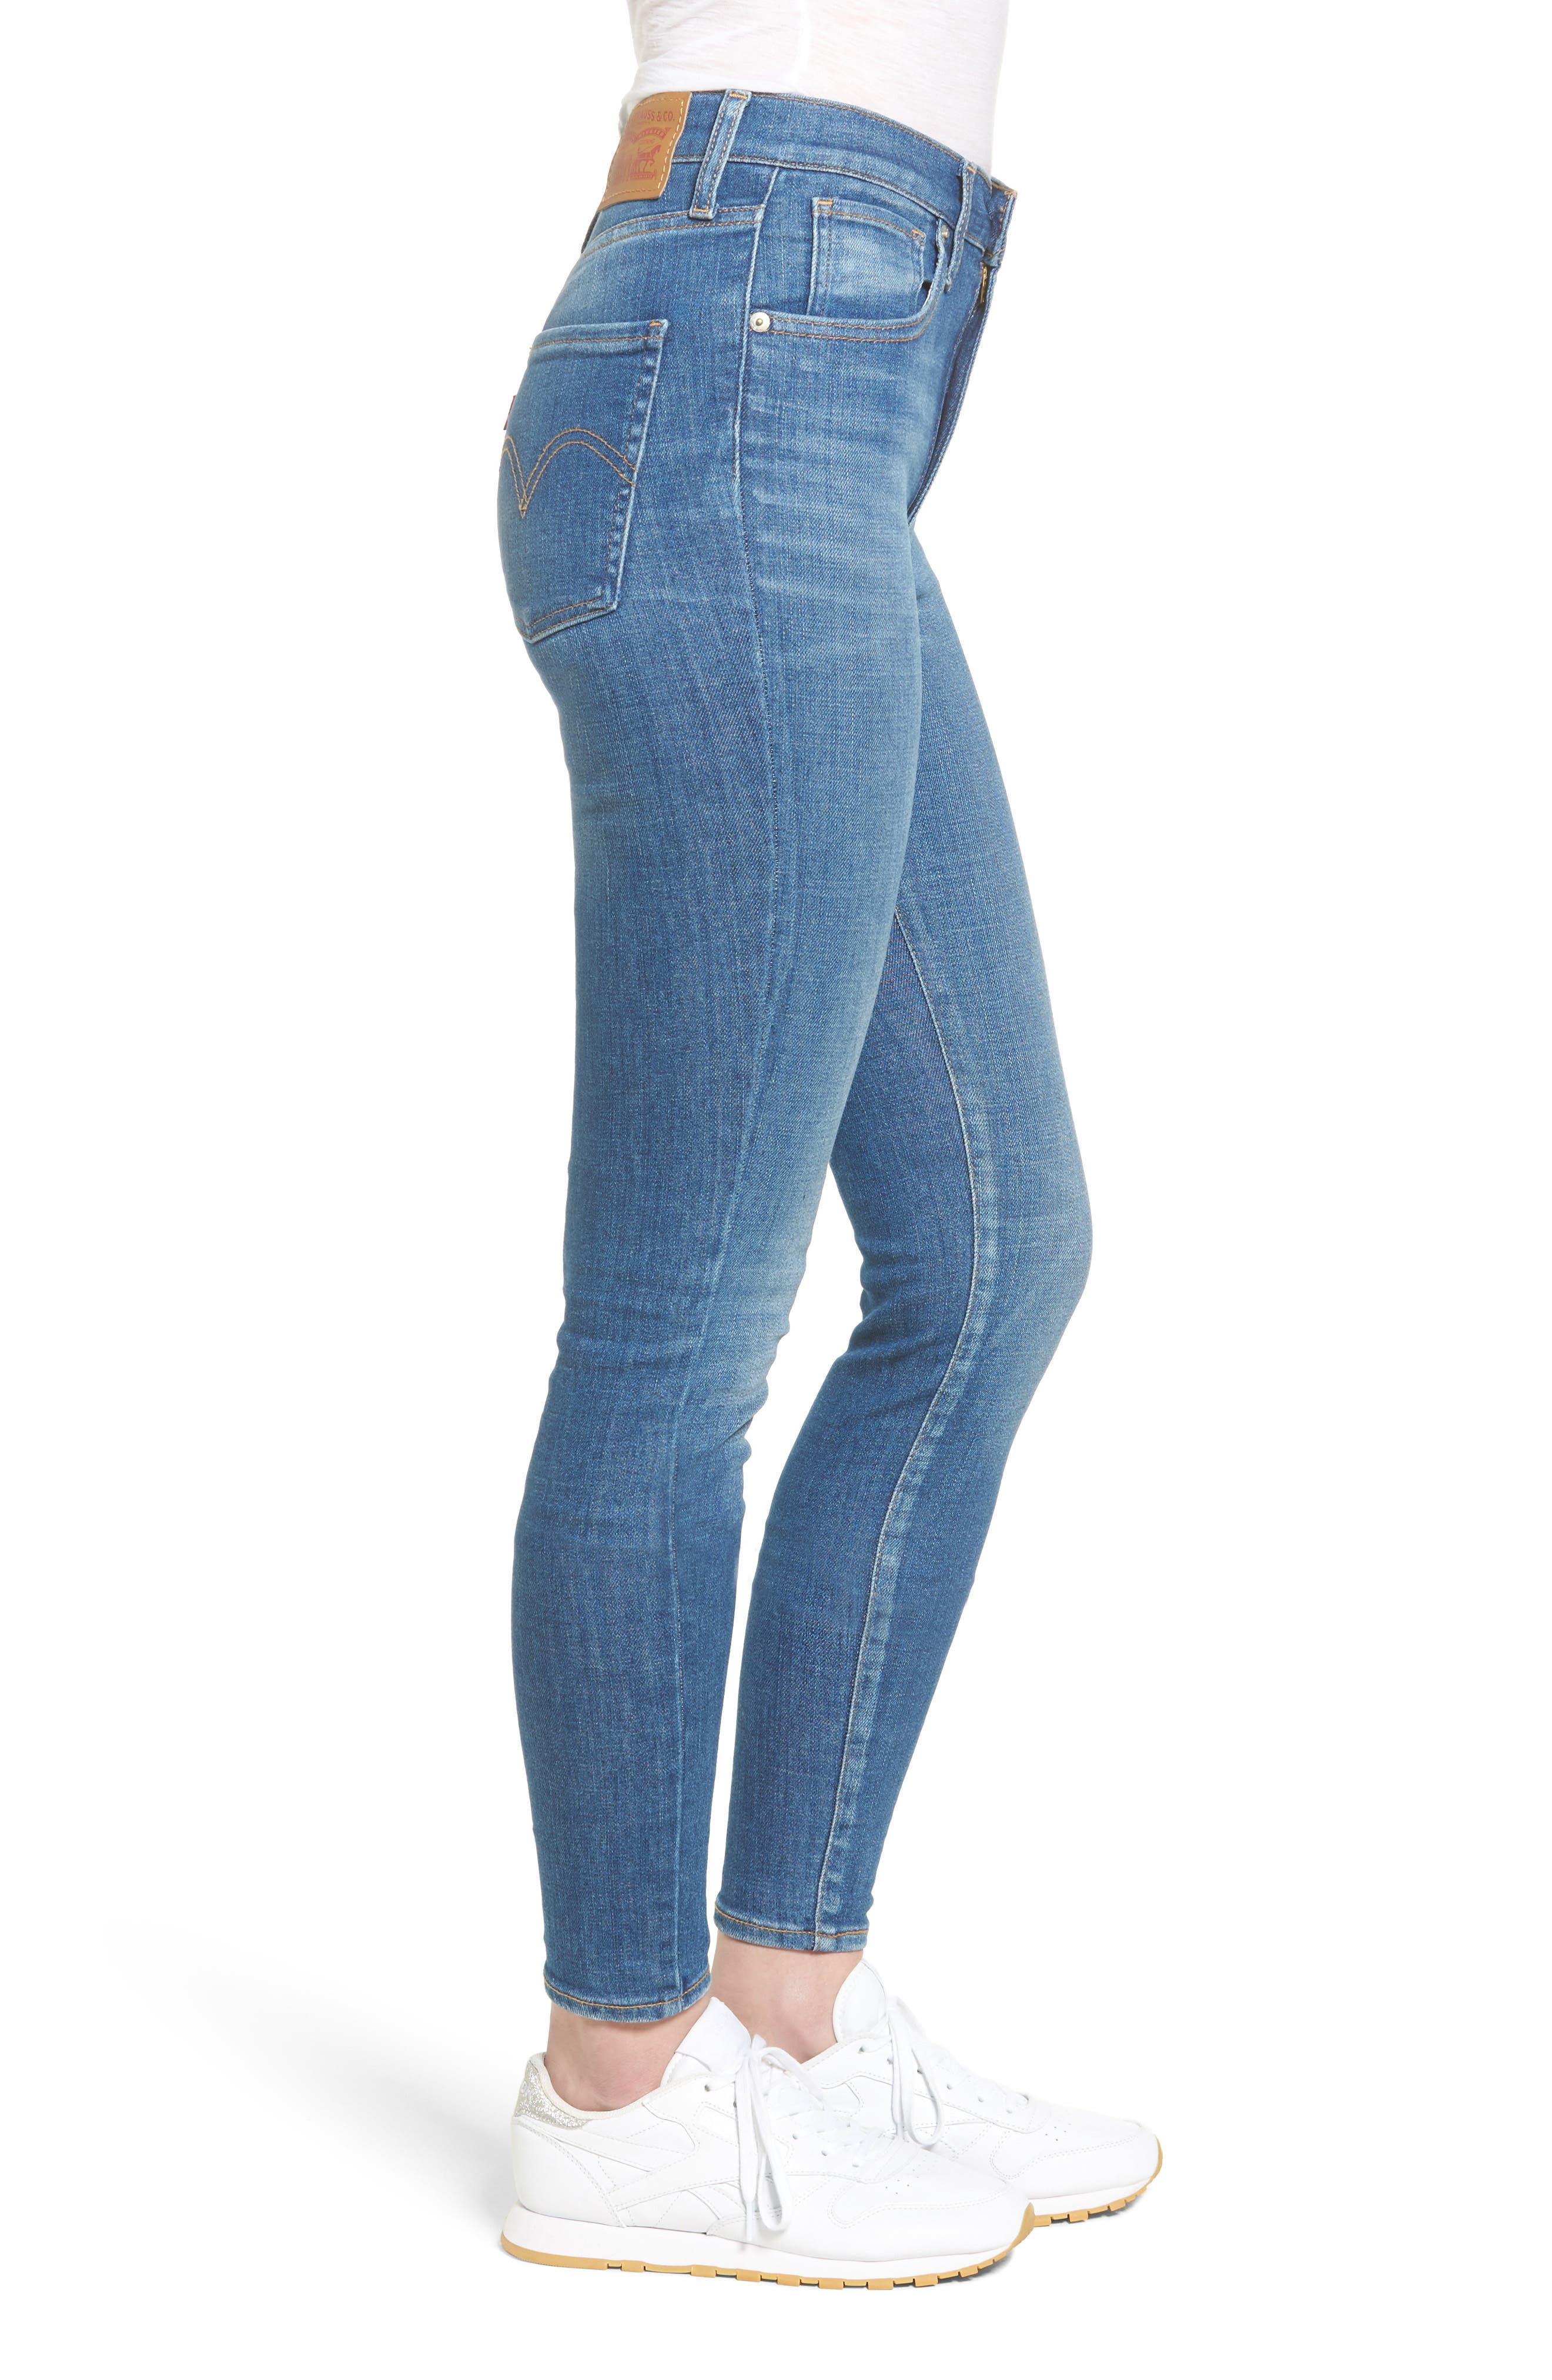 Mile High Skinny Jeans,                             Alternate thumbnail 3, color,